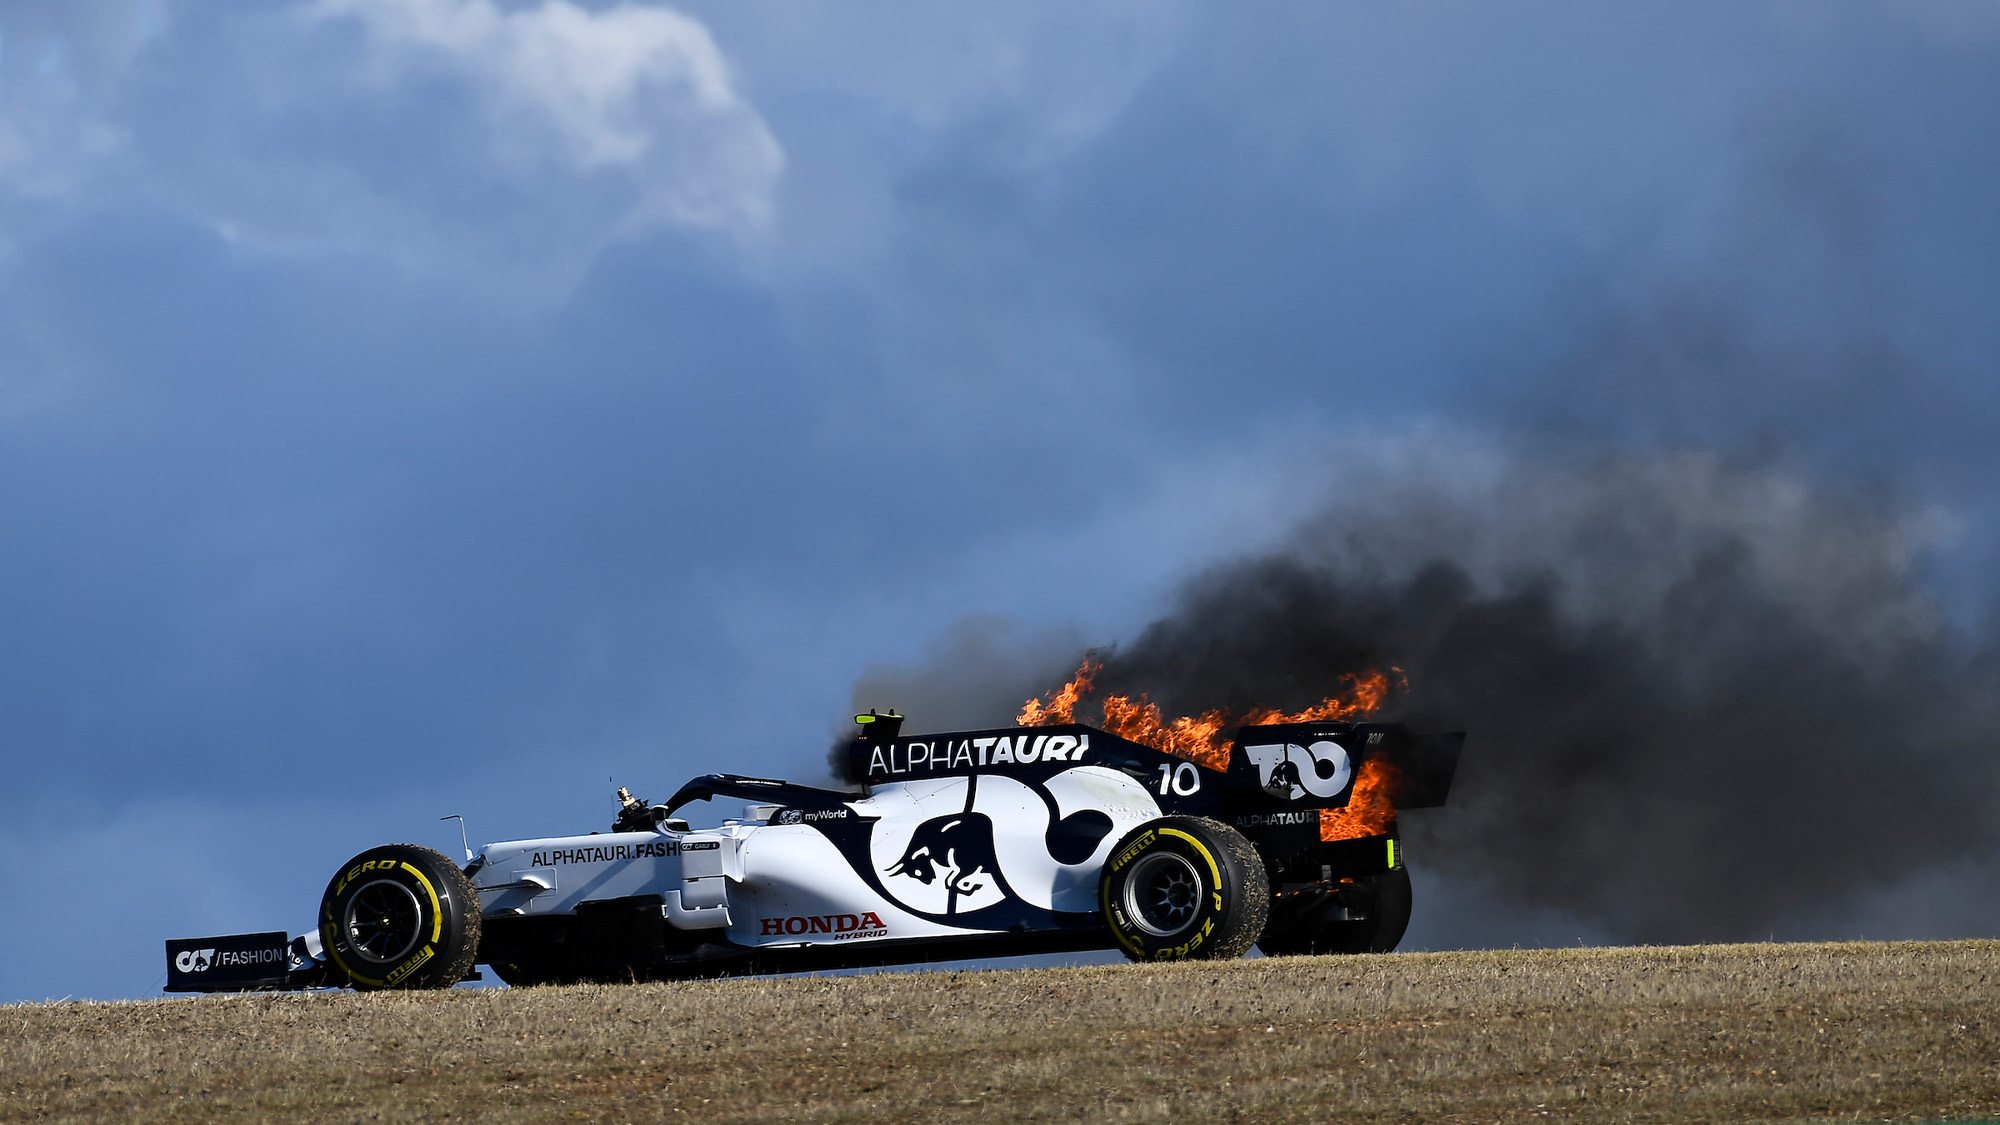 Pierre Gasly's AlphaTauri car on fire during practice at Portimao ahead of the 2020 F1 Portuguese Grand Prix